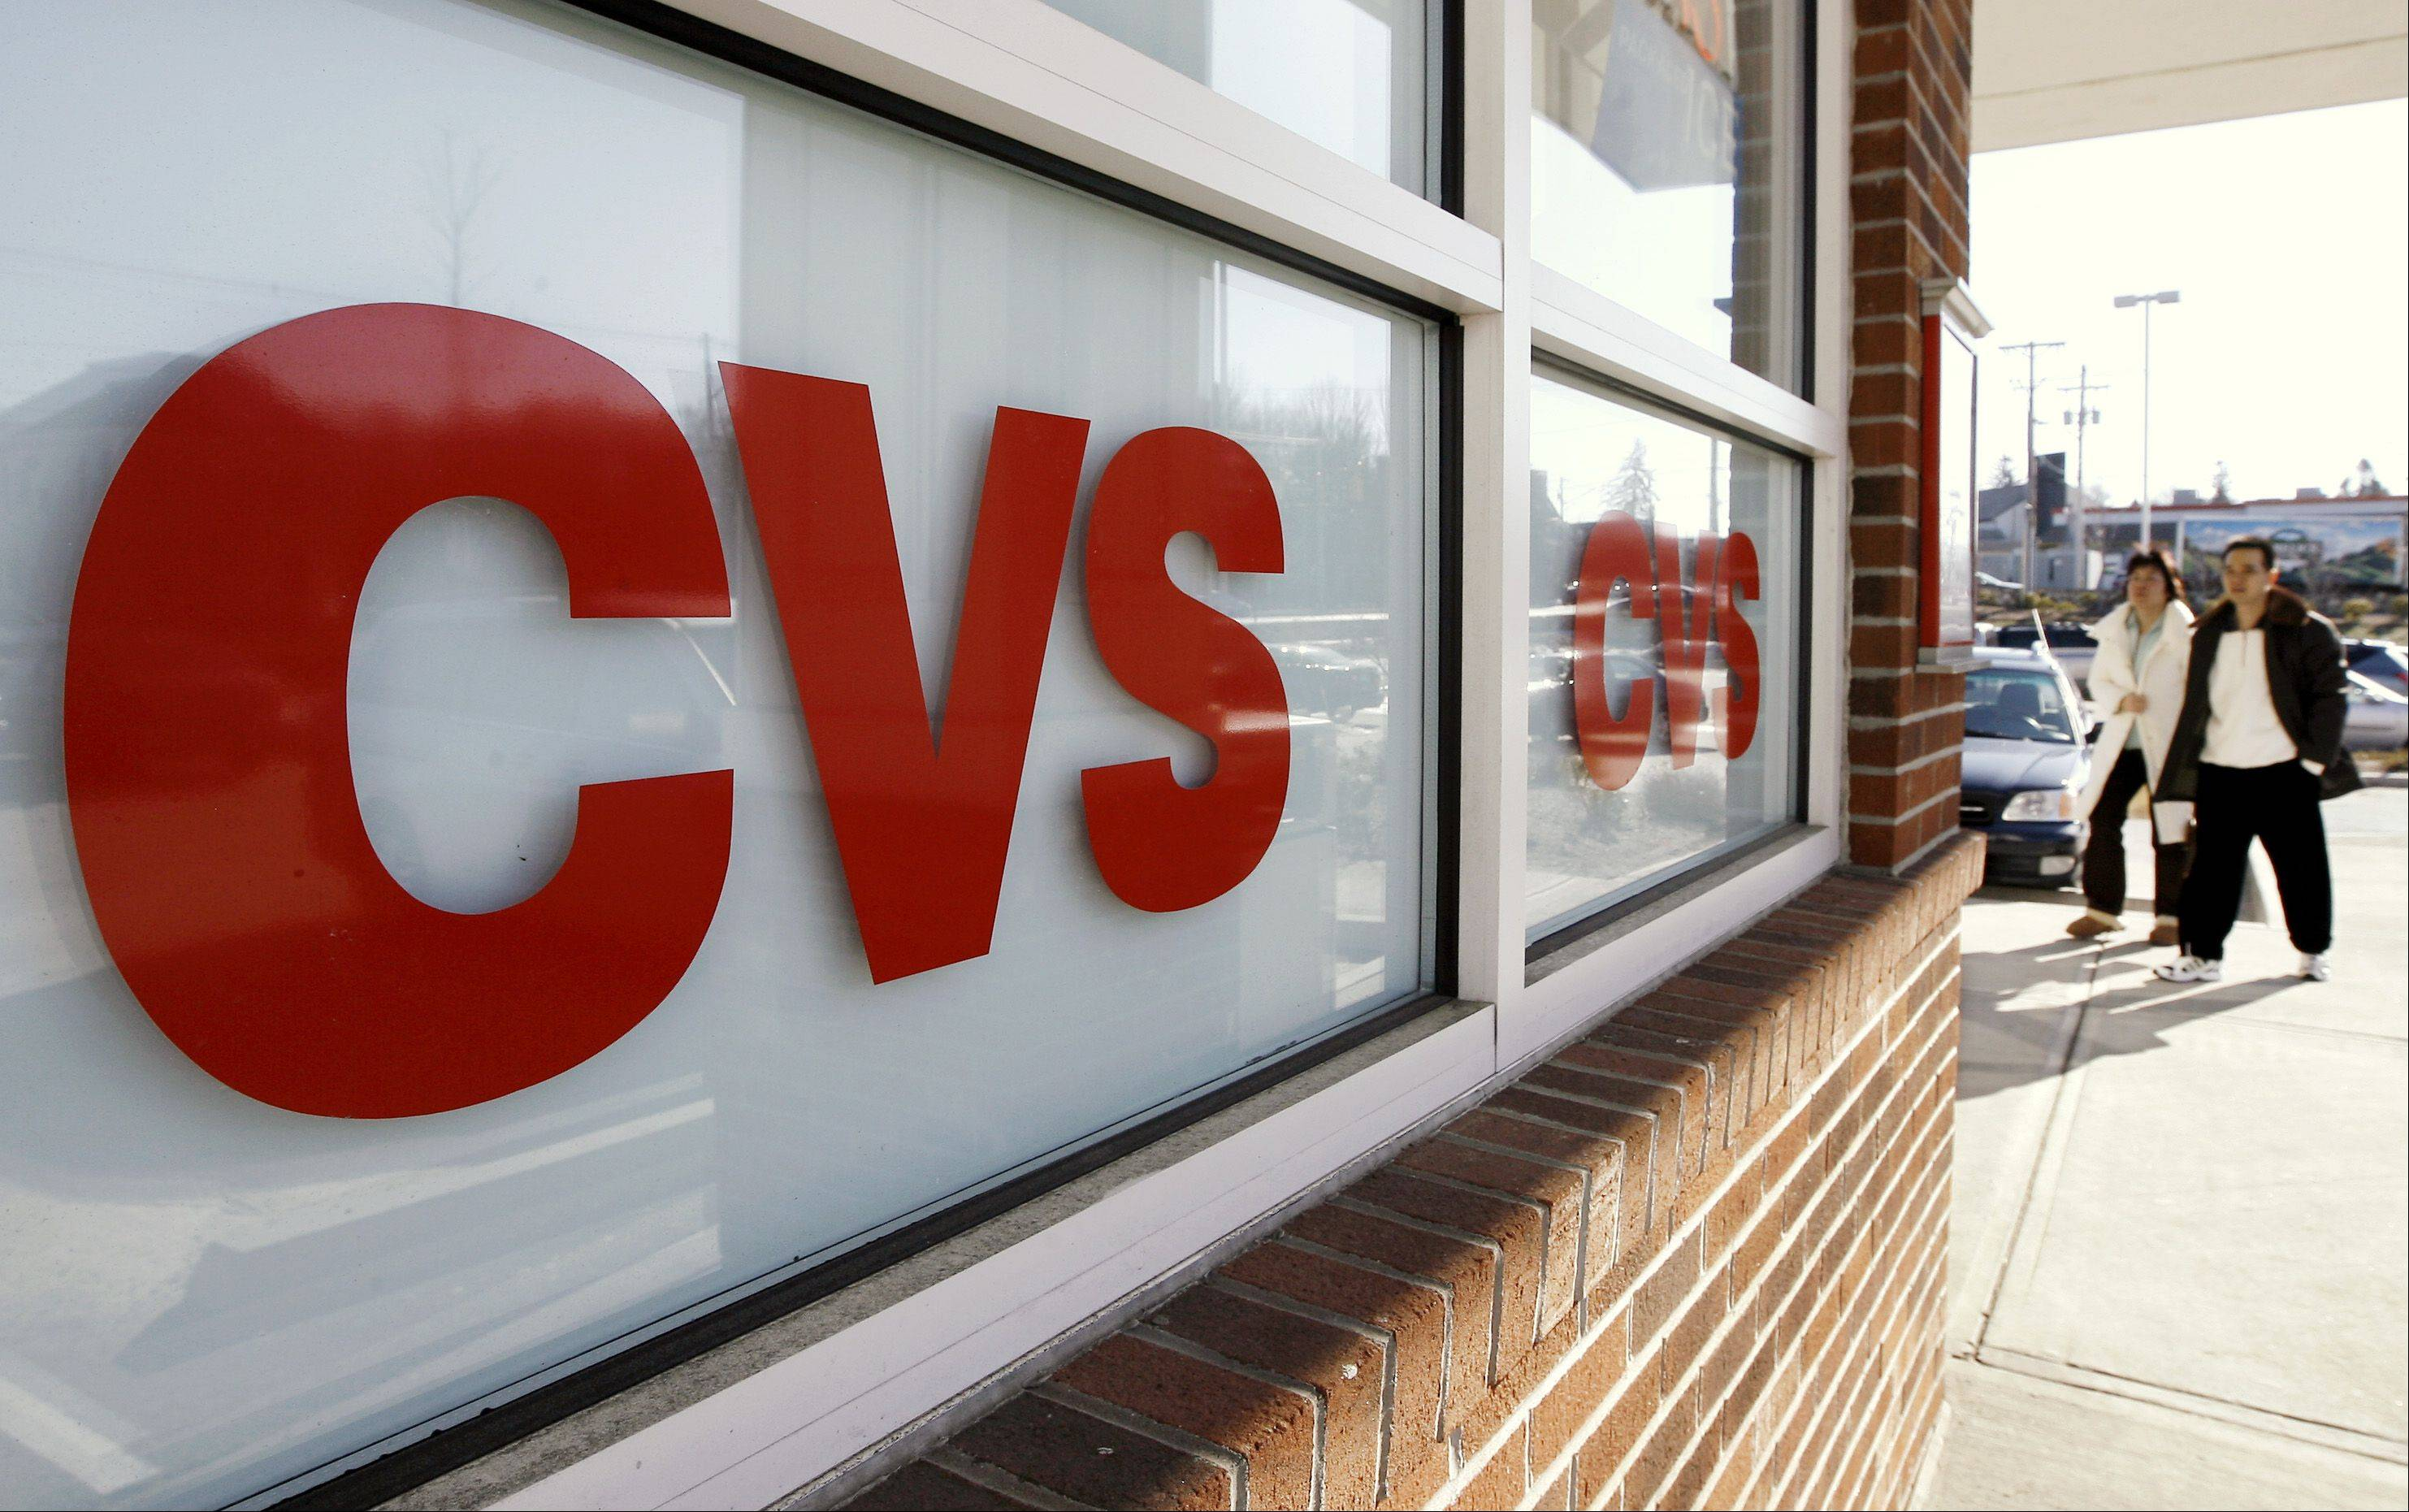 The Department of Justice says a unit of CVS Caremark has agreed to pay over $5 million to settle allegations that it reported false prescription drug pricing data to the government's Medicare program.